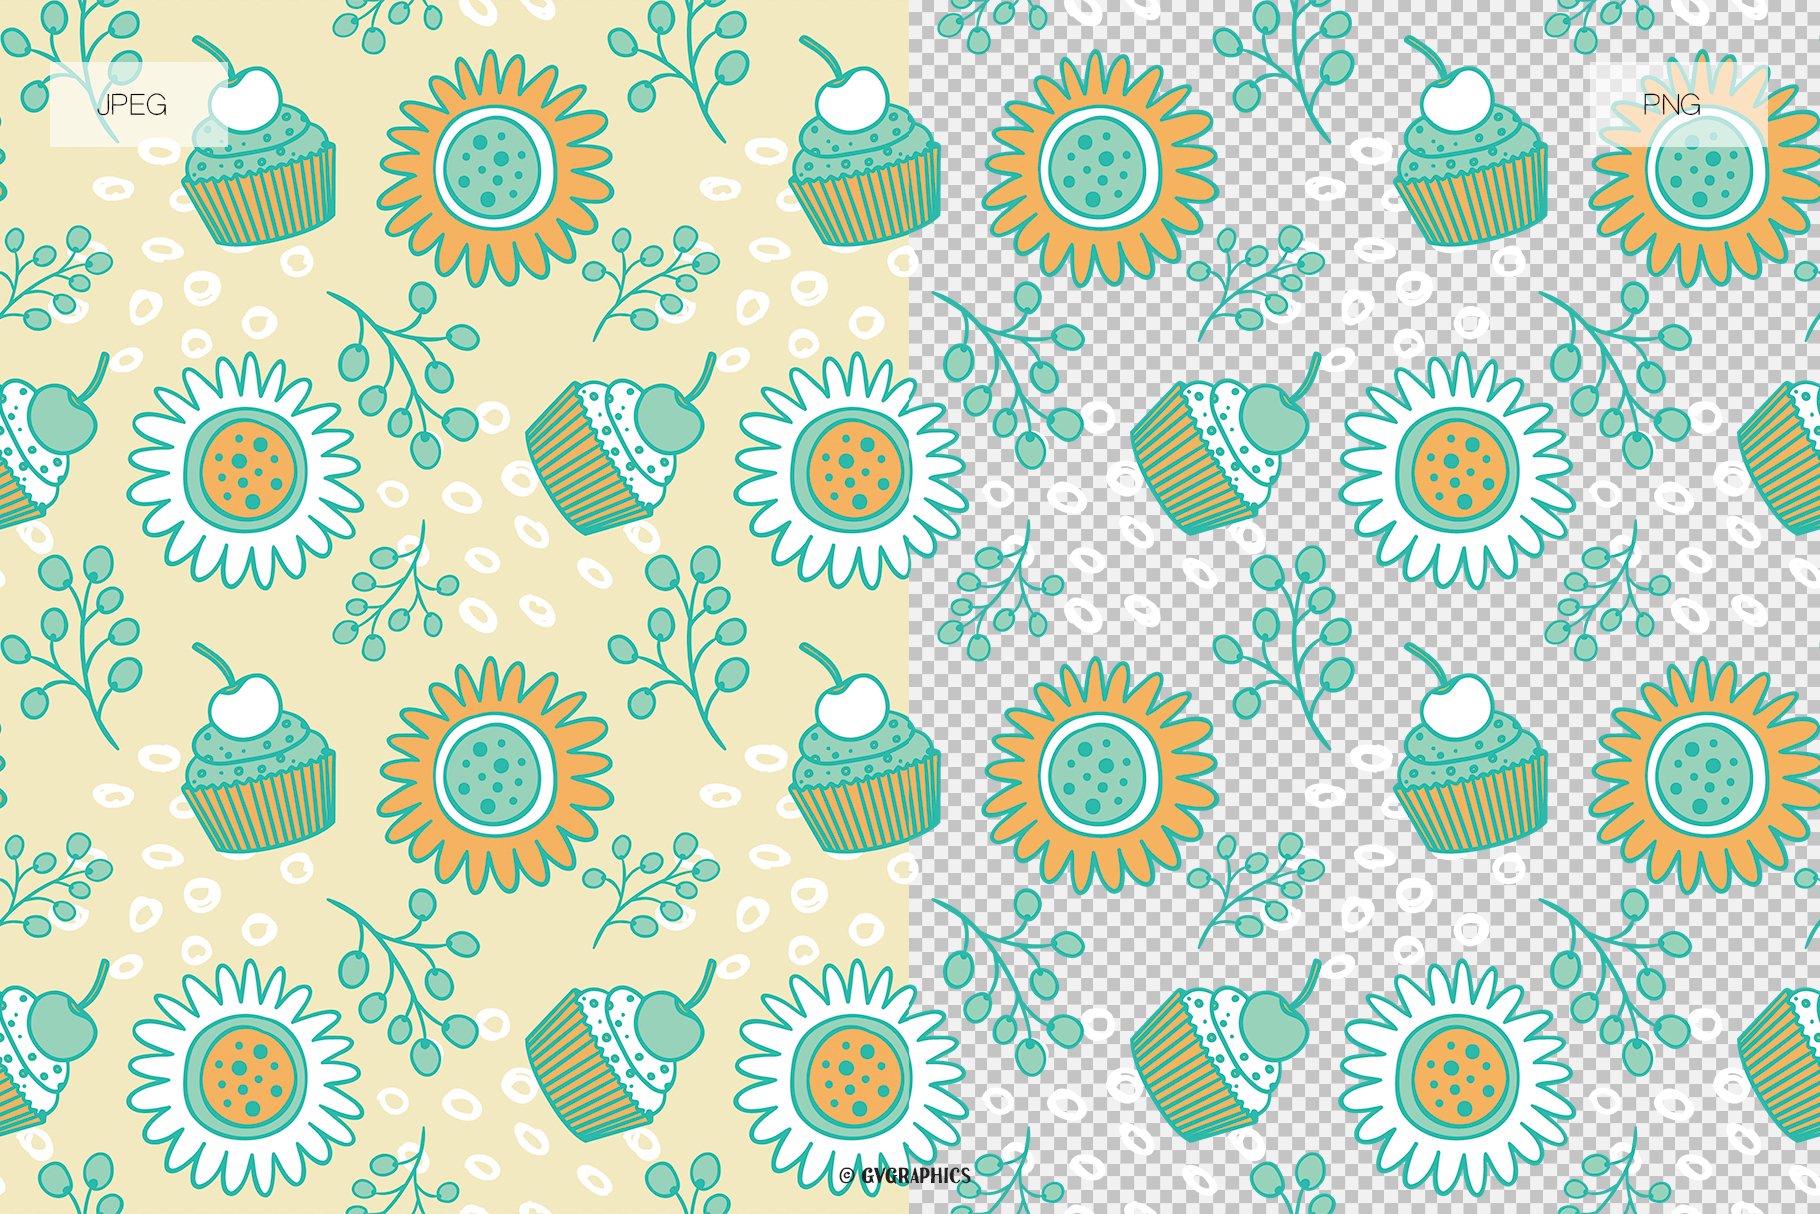 Exsamples Muffins and Flowers Seamless Patterns.